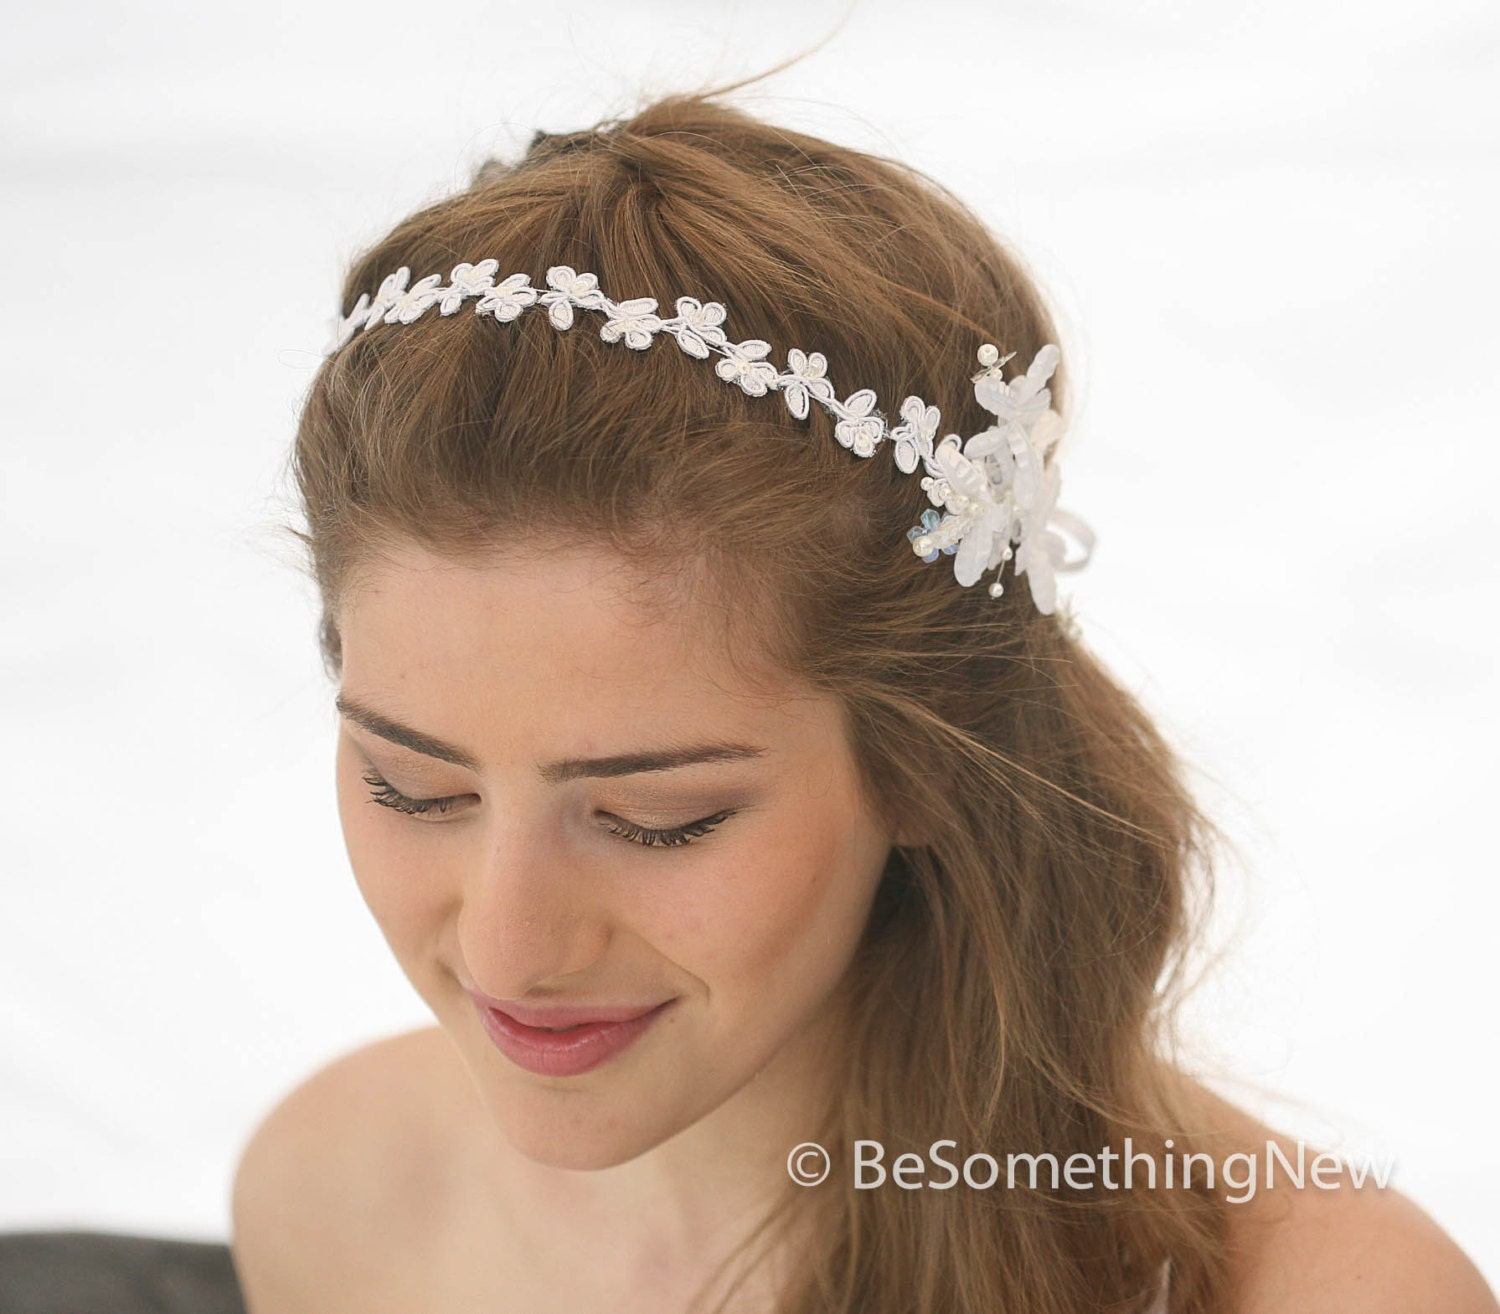 Floral Lace Headpiece For Wedding: Wedding Flower And Daisy Lace Headband Pearl Tie Headpiece For